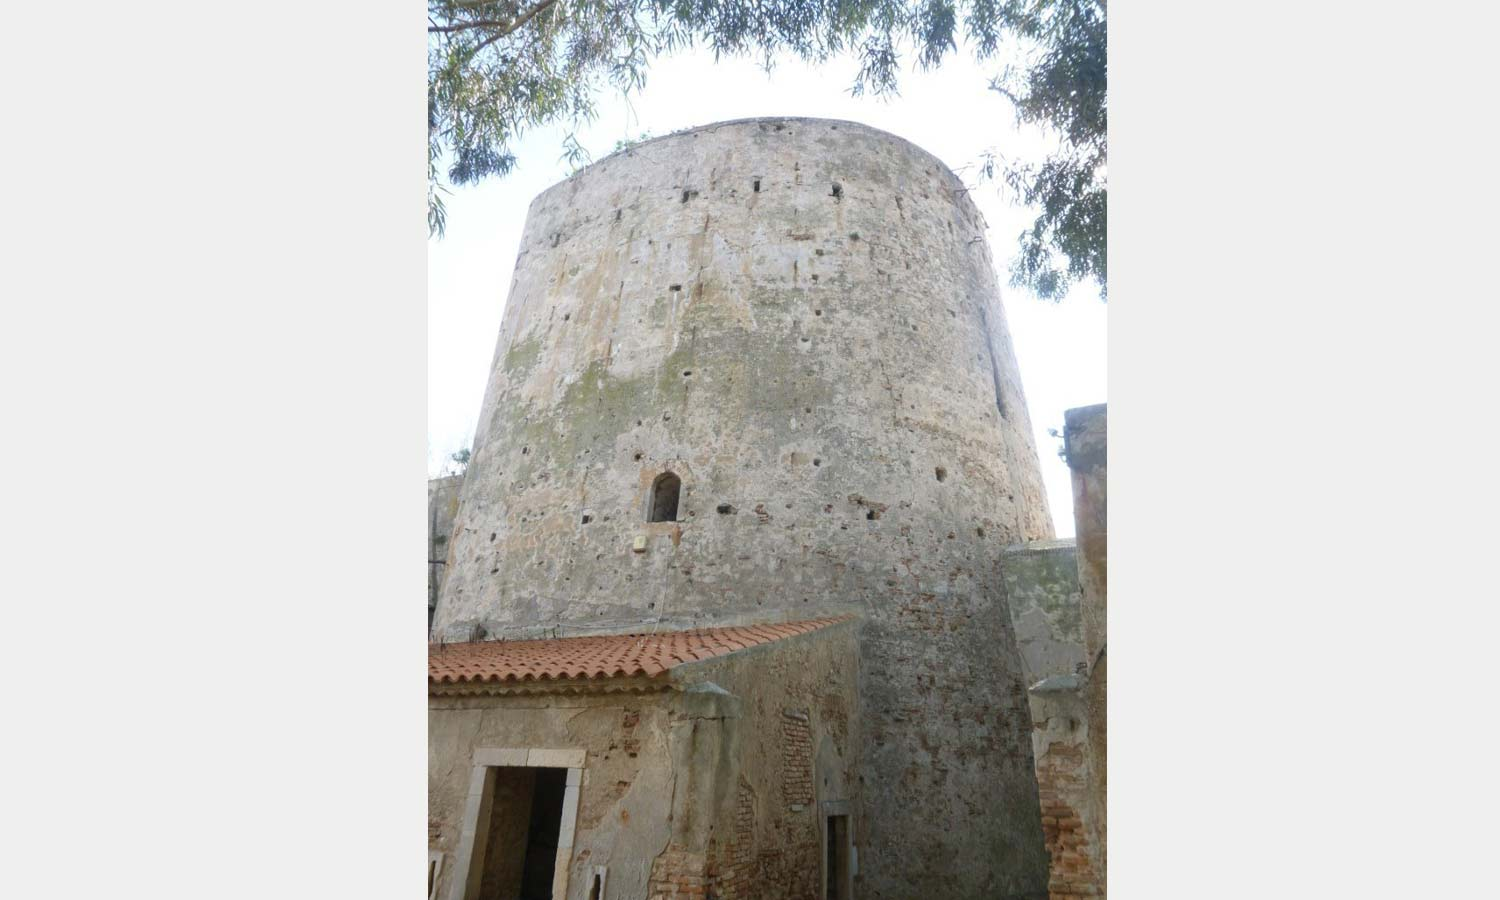 The tower of the fort at Faro.